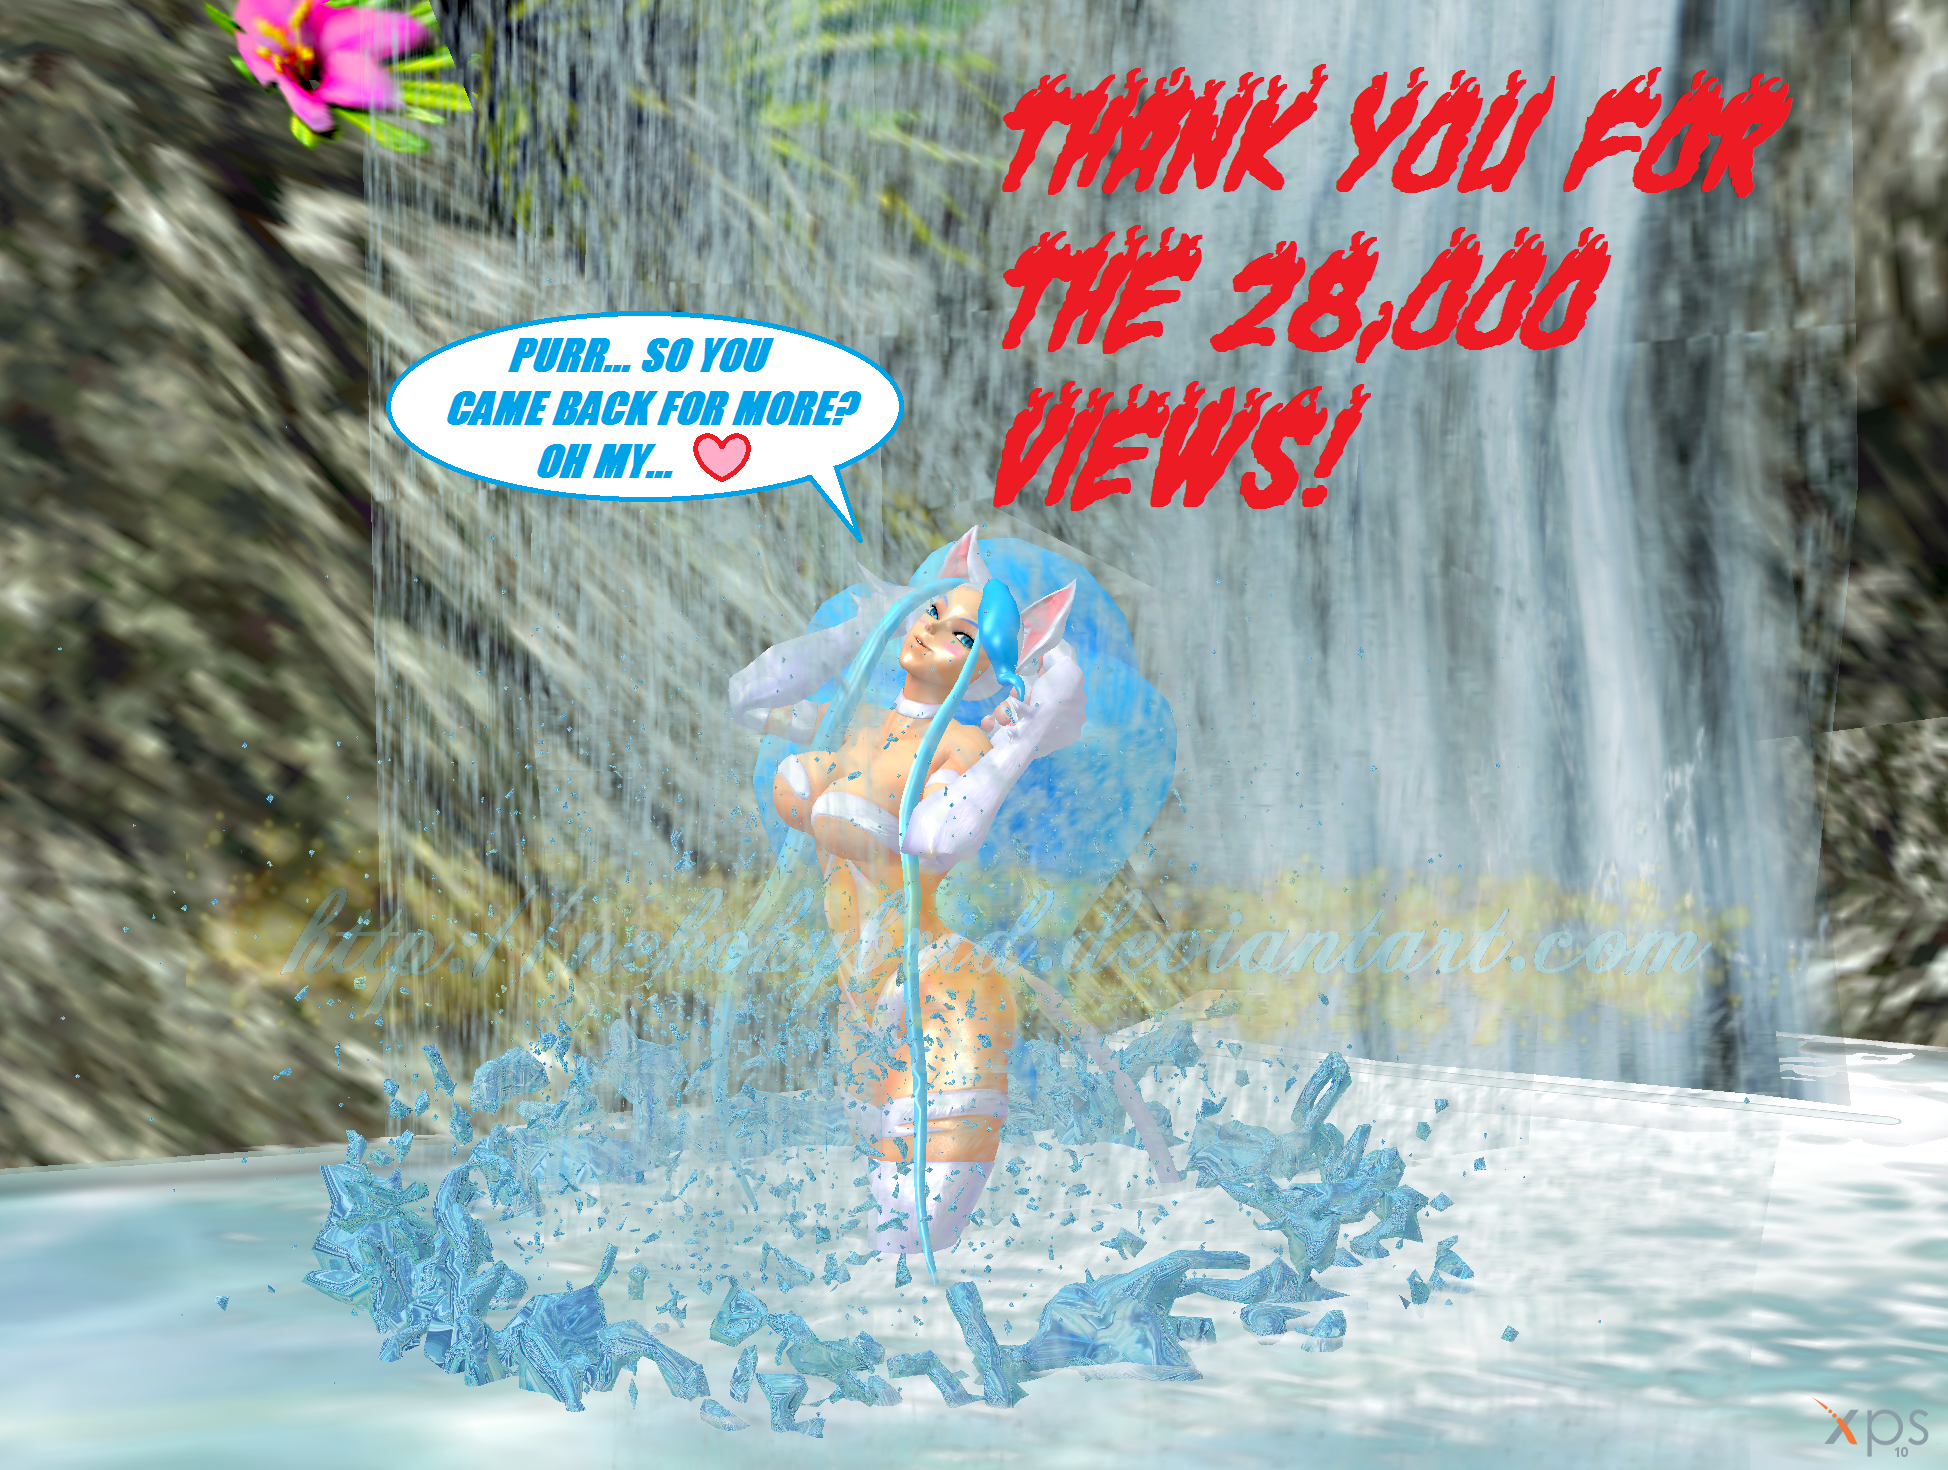 Thank You for the 28,000 Page Views! by NekoHybrid